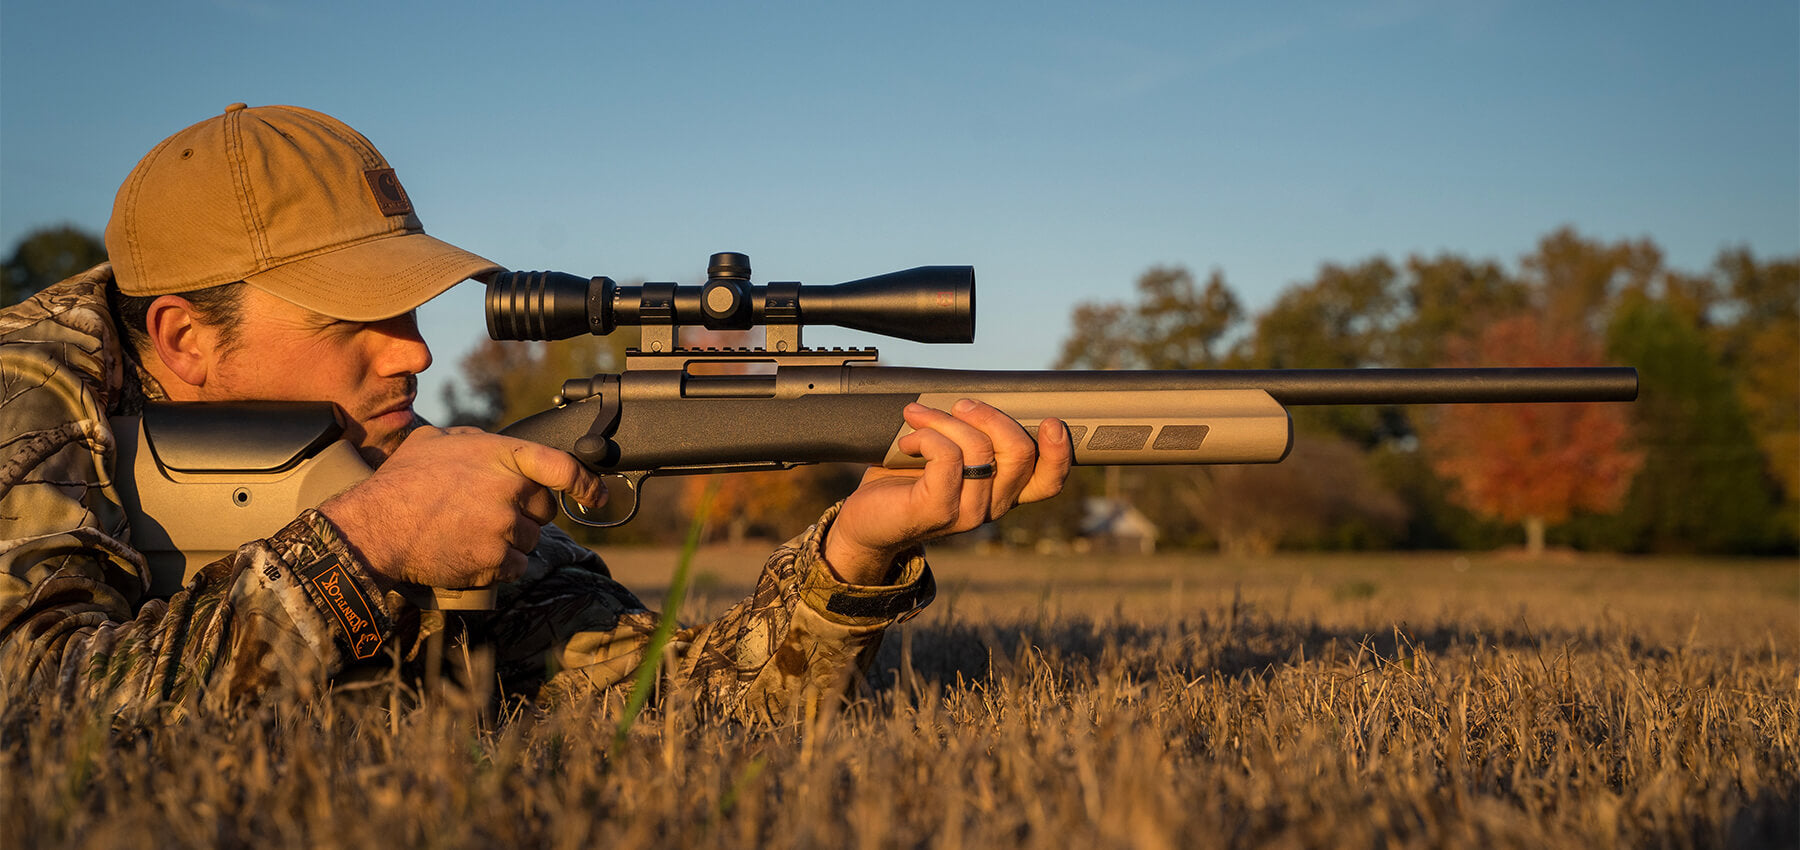 Hunting chassis gunstock designed to perform and built by nature for the outdoors